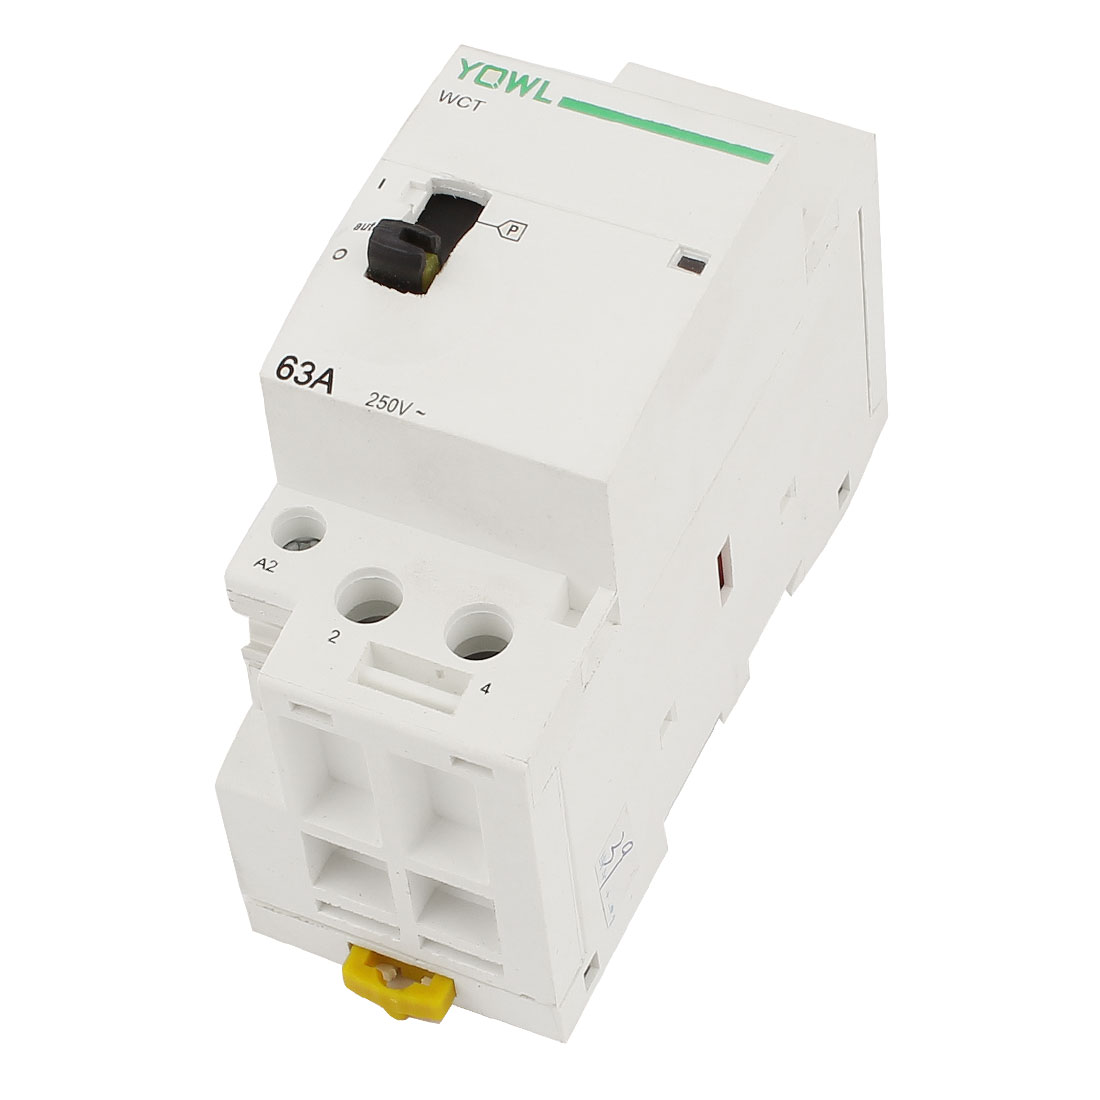 WCT-63A Double Pole Household Electric AC Power Contactor 63A Uc230V